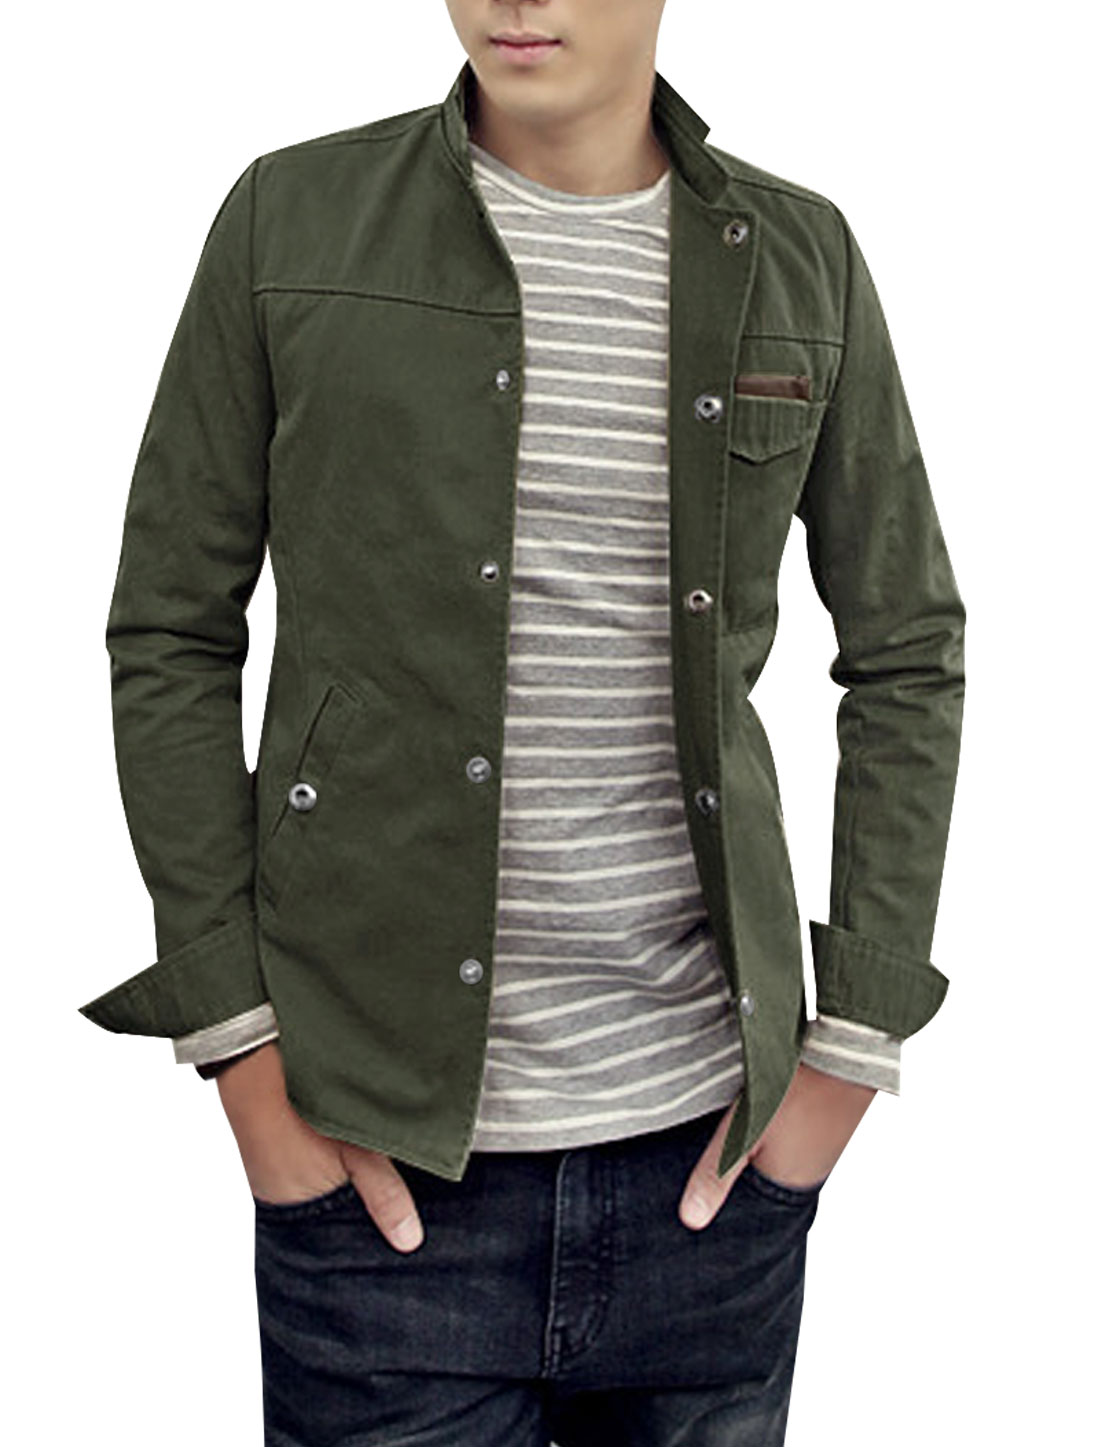 Mens Army Green Trendy Long Sleeve Button Closure Patch Pockets Jacket S